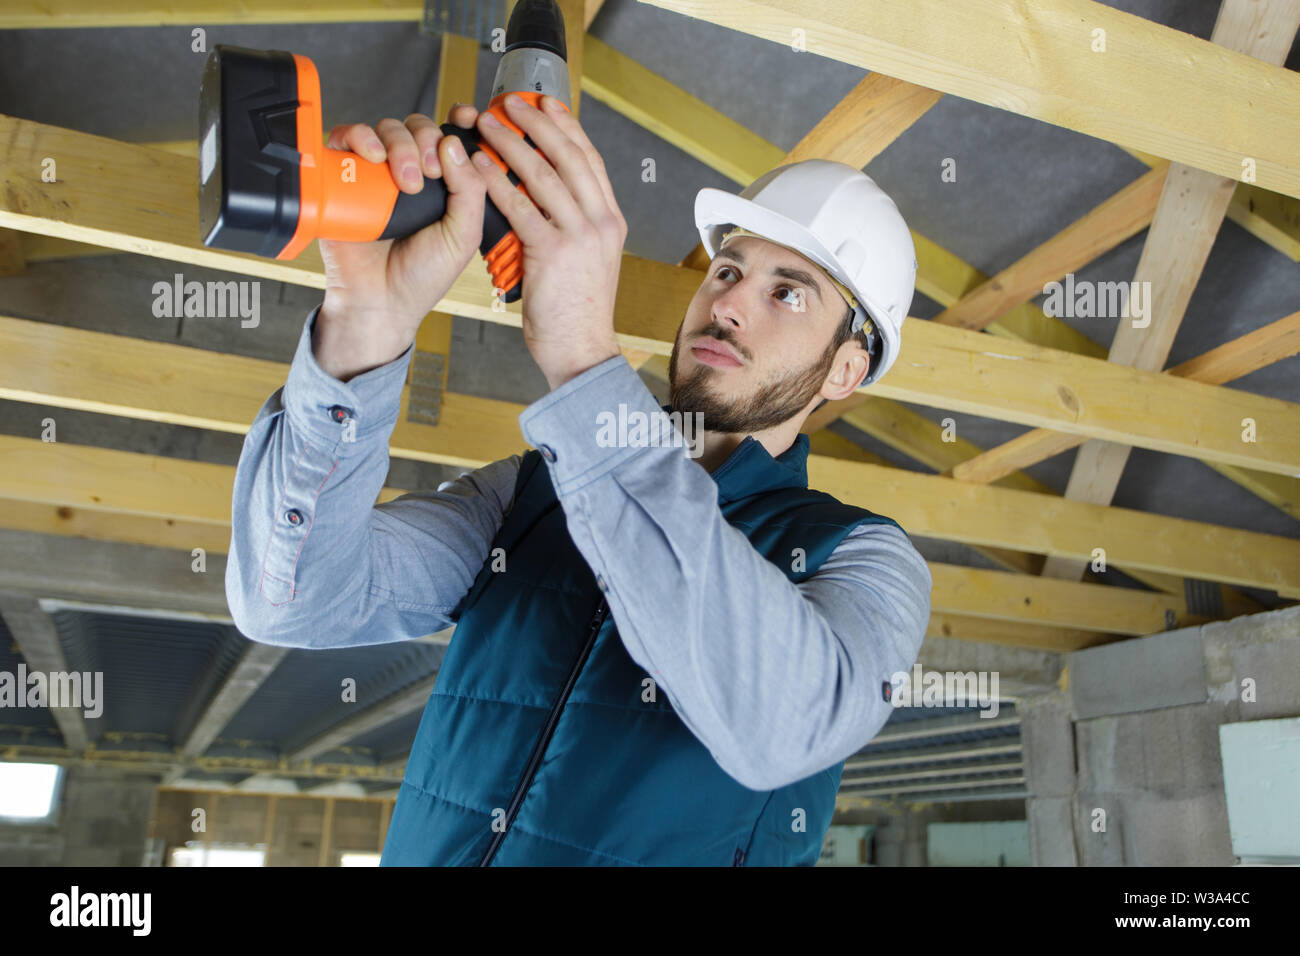 worker drilling wood beam during remodeling - Stock Image